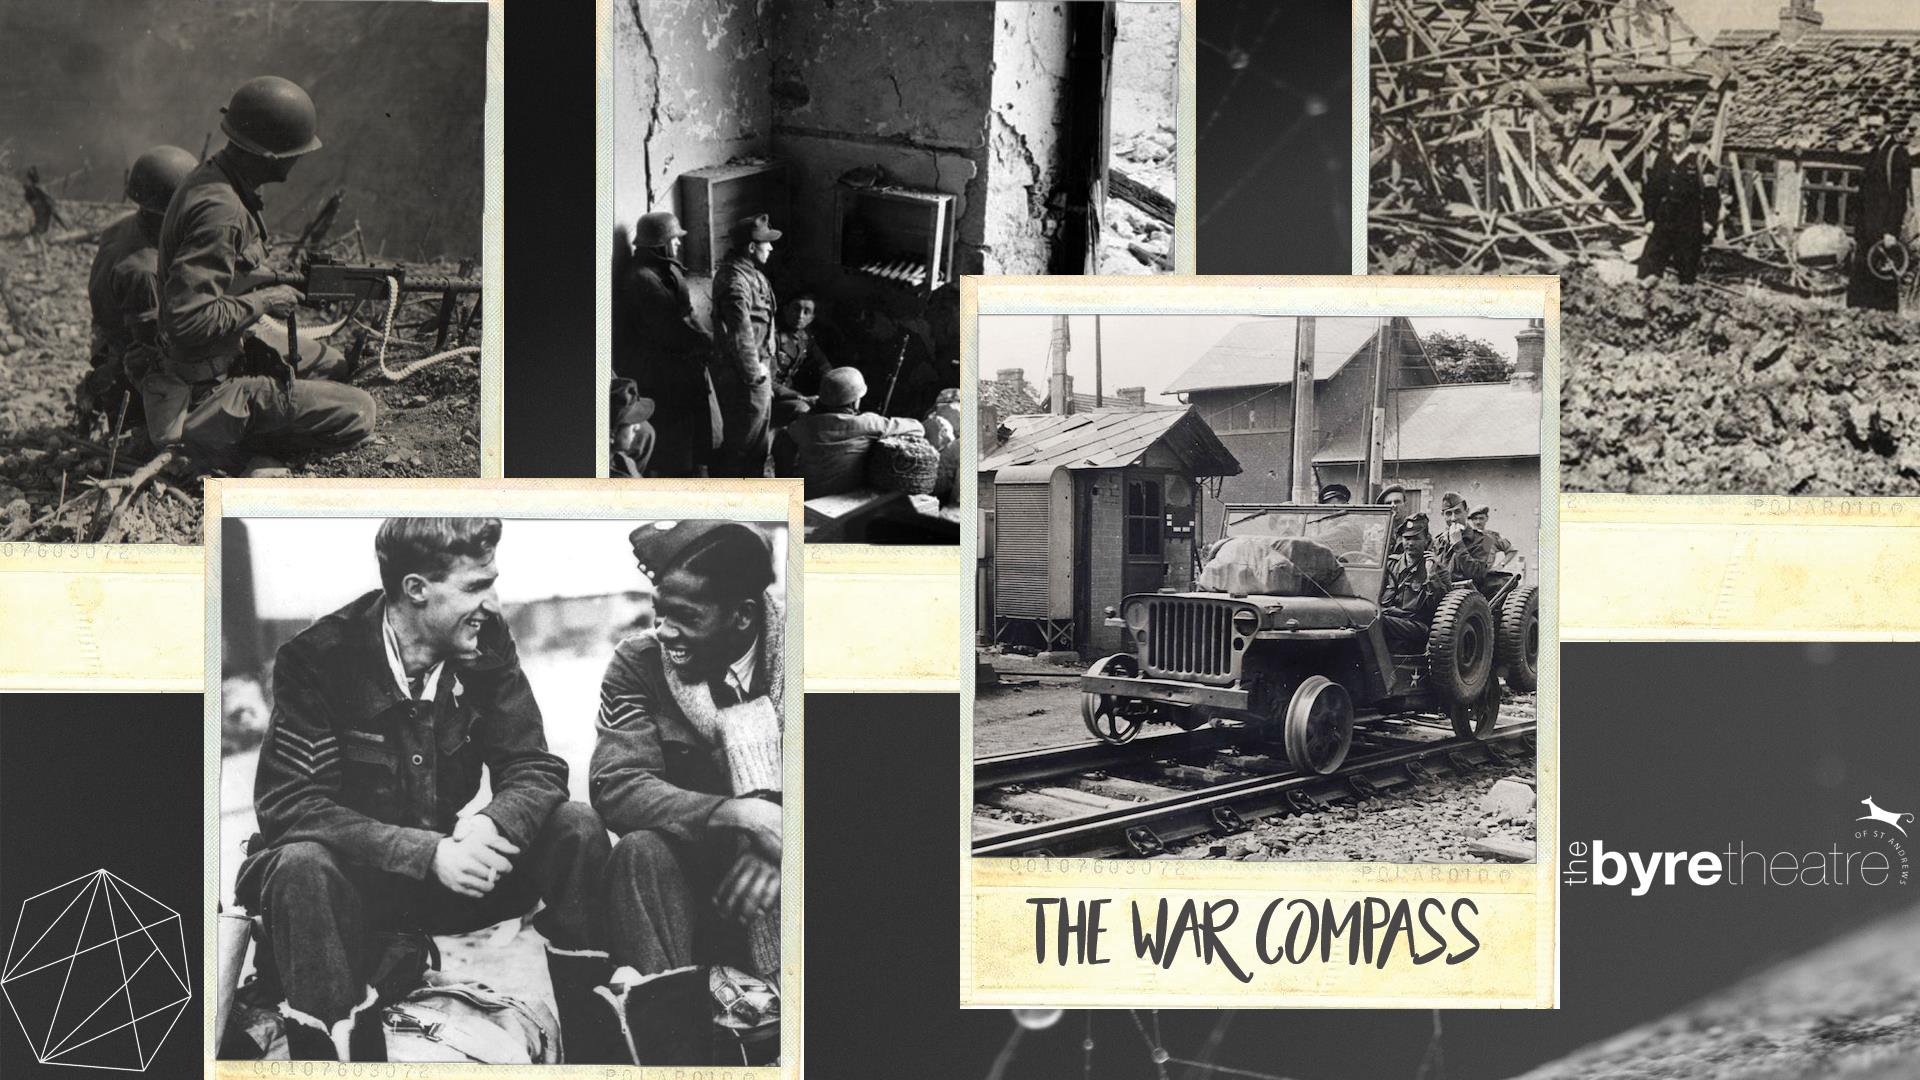 The War Compass: Reviewed